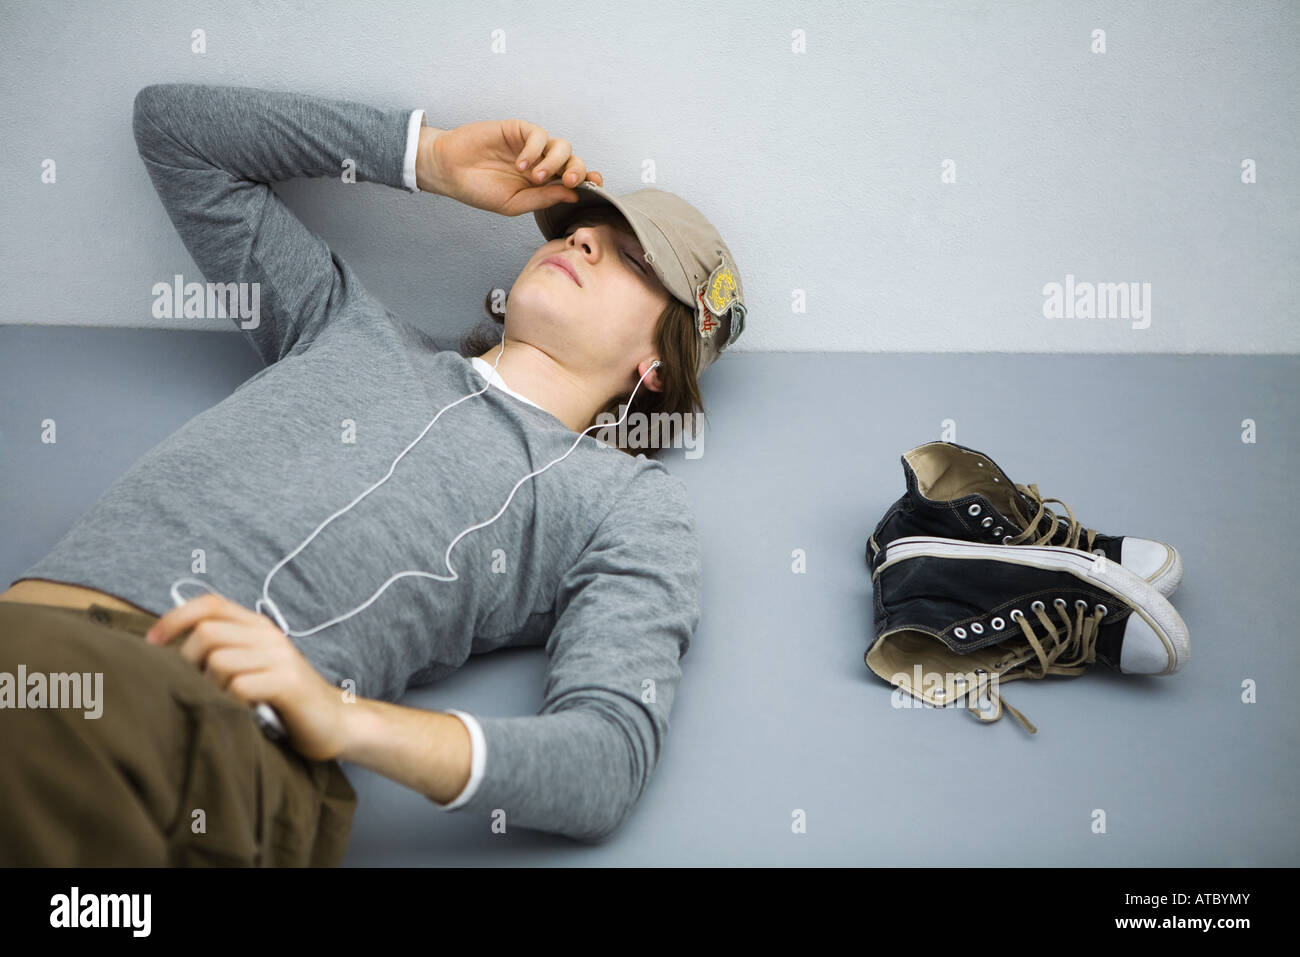 Young man lying on the ground with eyes closed, listening to earphones - Stock Image